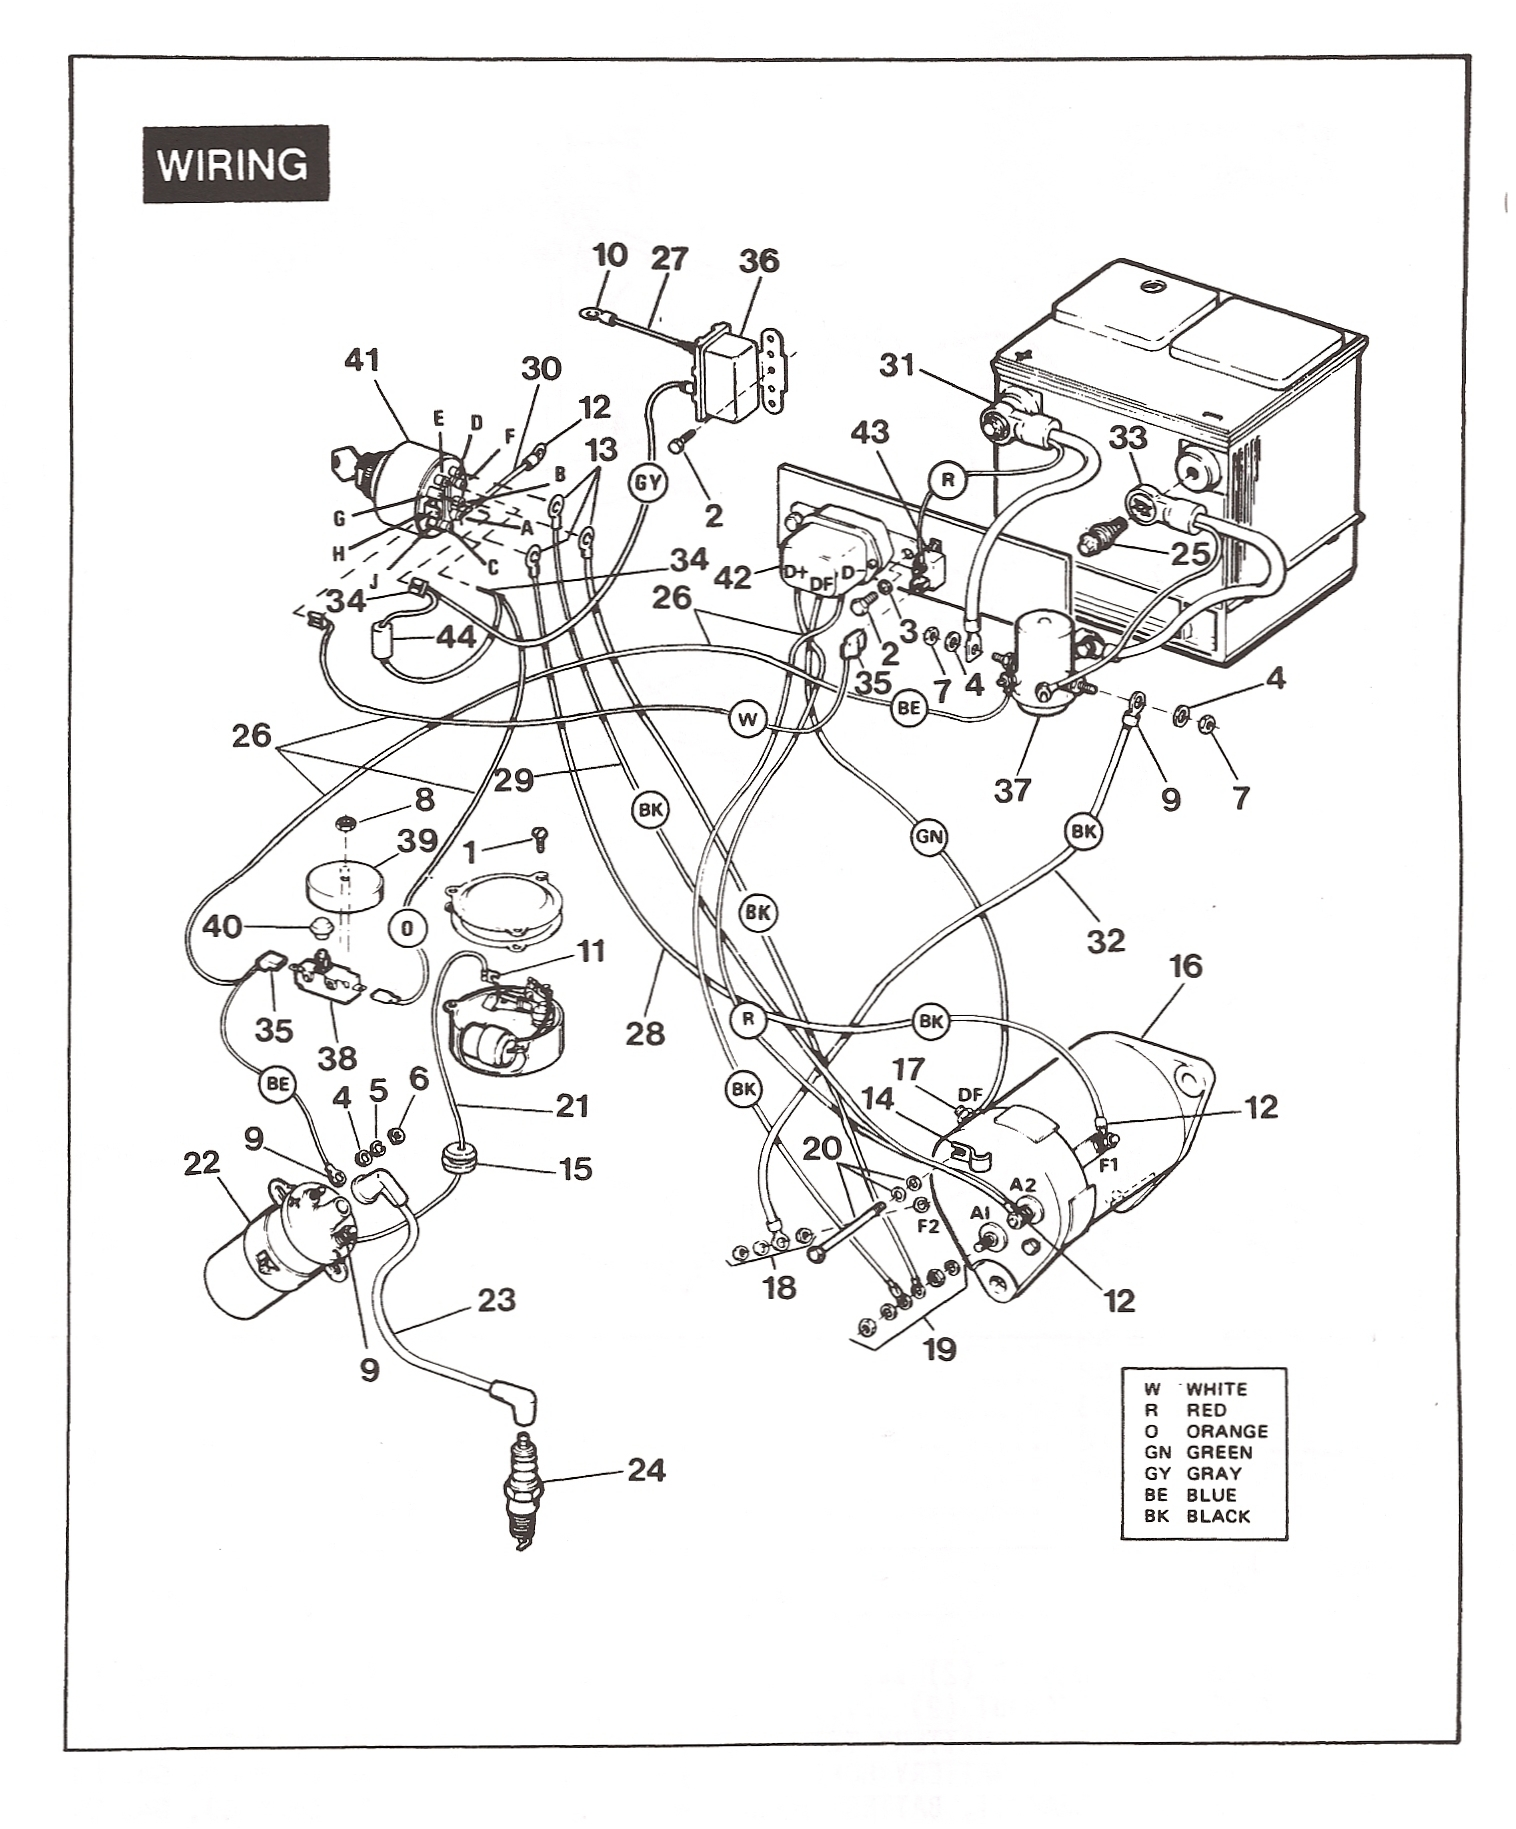 wiring diagram for hyundai golf cart with Gallery on Index besides Dexter Axle Wiring Diagram additionally For Club Car 36 Volt Wiring Diagram Free Picture also 95 Ez Go 36v Wiring Diagram as well Electric Golf Cart Wiring Harness.